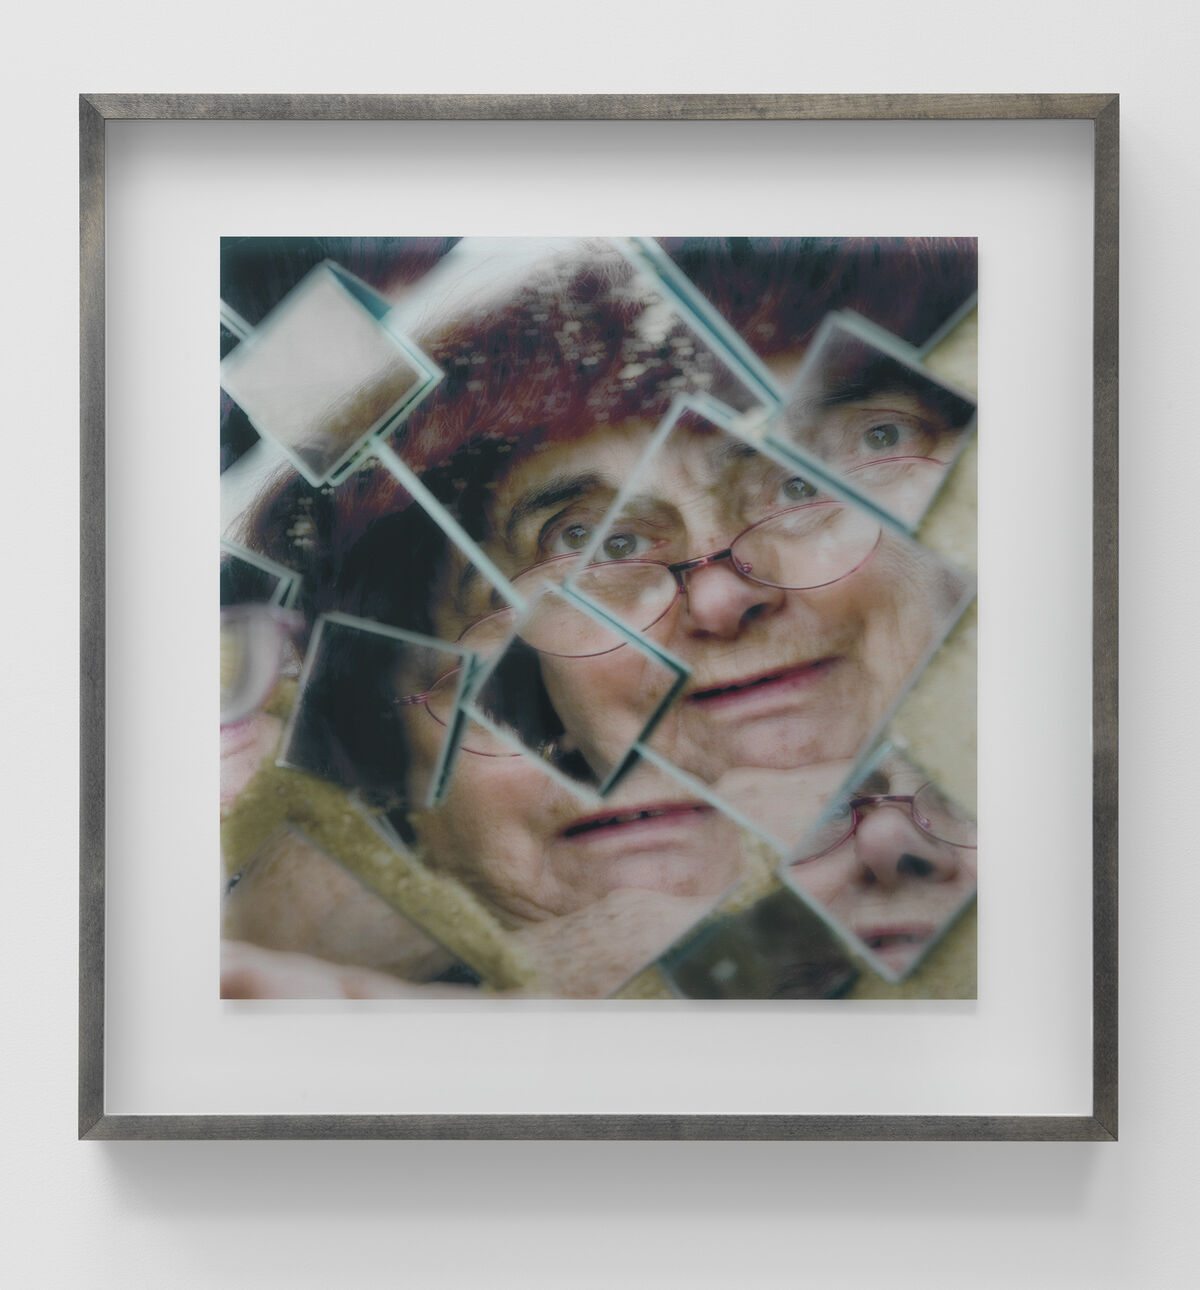 Agnès Varda, Autoportrait morcelé, 2009.      Courtesy of the artist and Blum & Poe, Los Angeles/New York/Tokyo.